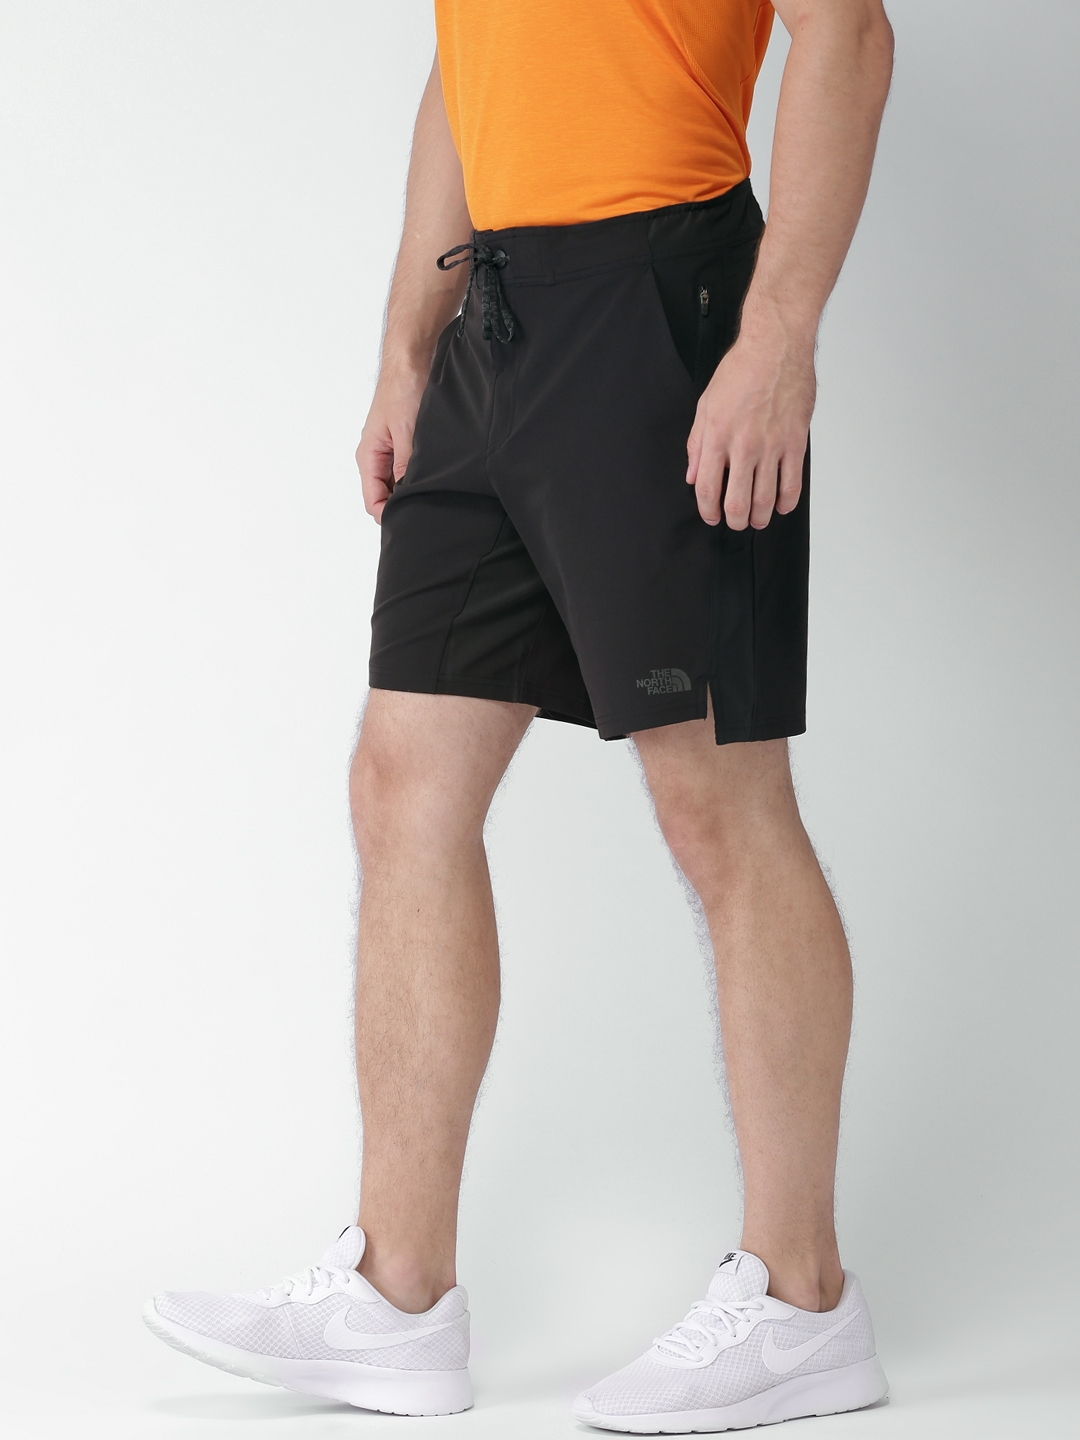 e61729fd8 Buy The North Face Men Black Solid Asian Fit Sports Shorts - Shorts ...